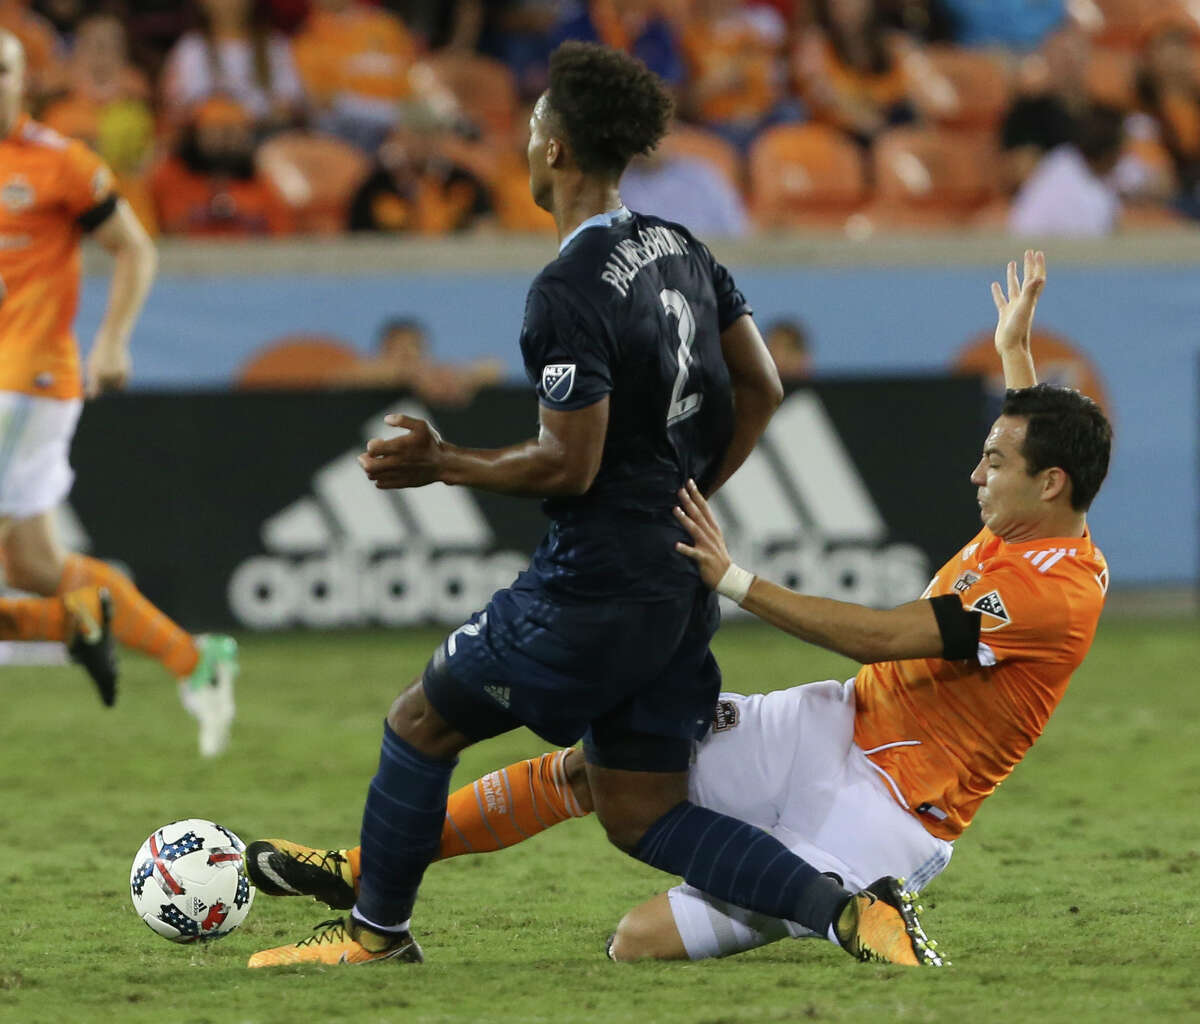 Houston Dynamo forward Erick Torres (9) tackles Sporting Kansas City defender Erik Palmer-Brown (2) during the second half of the MLS game at BBVA Compass Stadium Wednesday, Oct. 11, 2017, in Houston. Houston Dynamo defeated Sporting Kansas City 2-1. ( Yi-Chin Lee / Houston Chronicle )